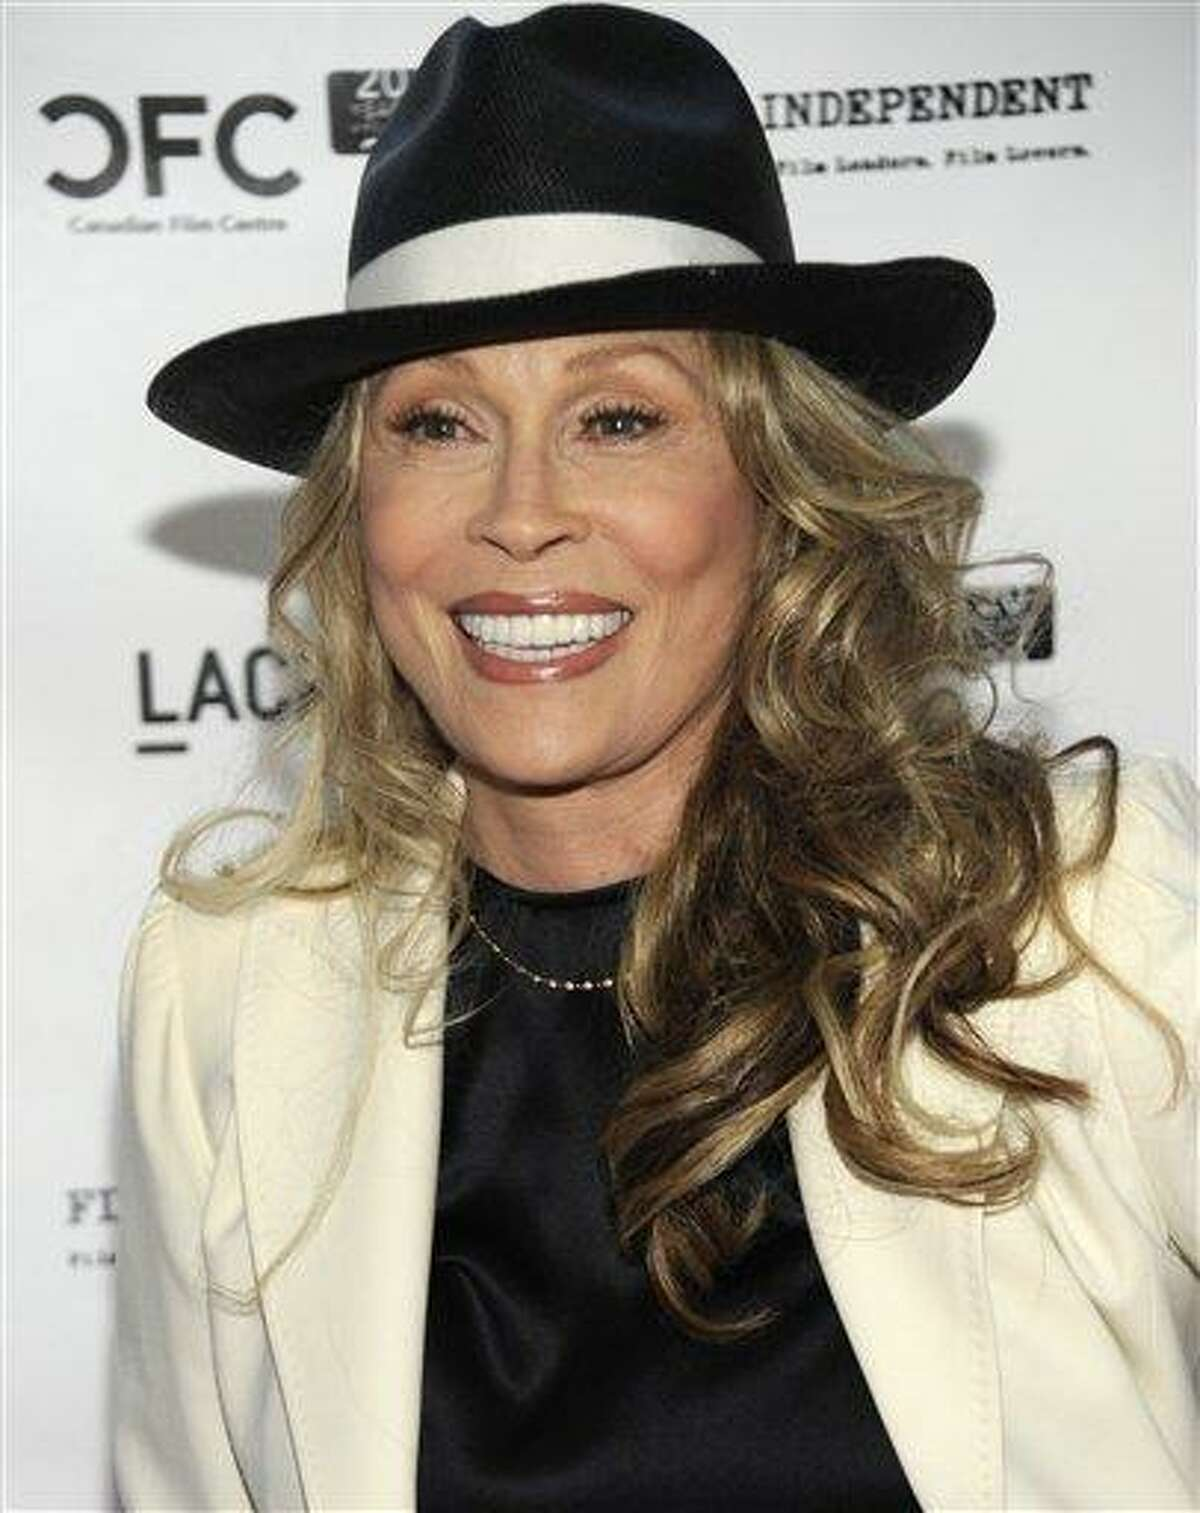 In this April 17, 2009 file photo, actress Faye Dunaway arrives at a tribute event and screening for director Norman Jewison at the Los Angeles County Museum of Art in Los Angeles. Dunaway is moving on from a fight with a landlord over a New York apartment _ by moving out. The New York Times reported Wednesday, Nov. 23, 2011, the